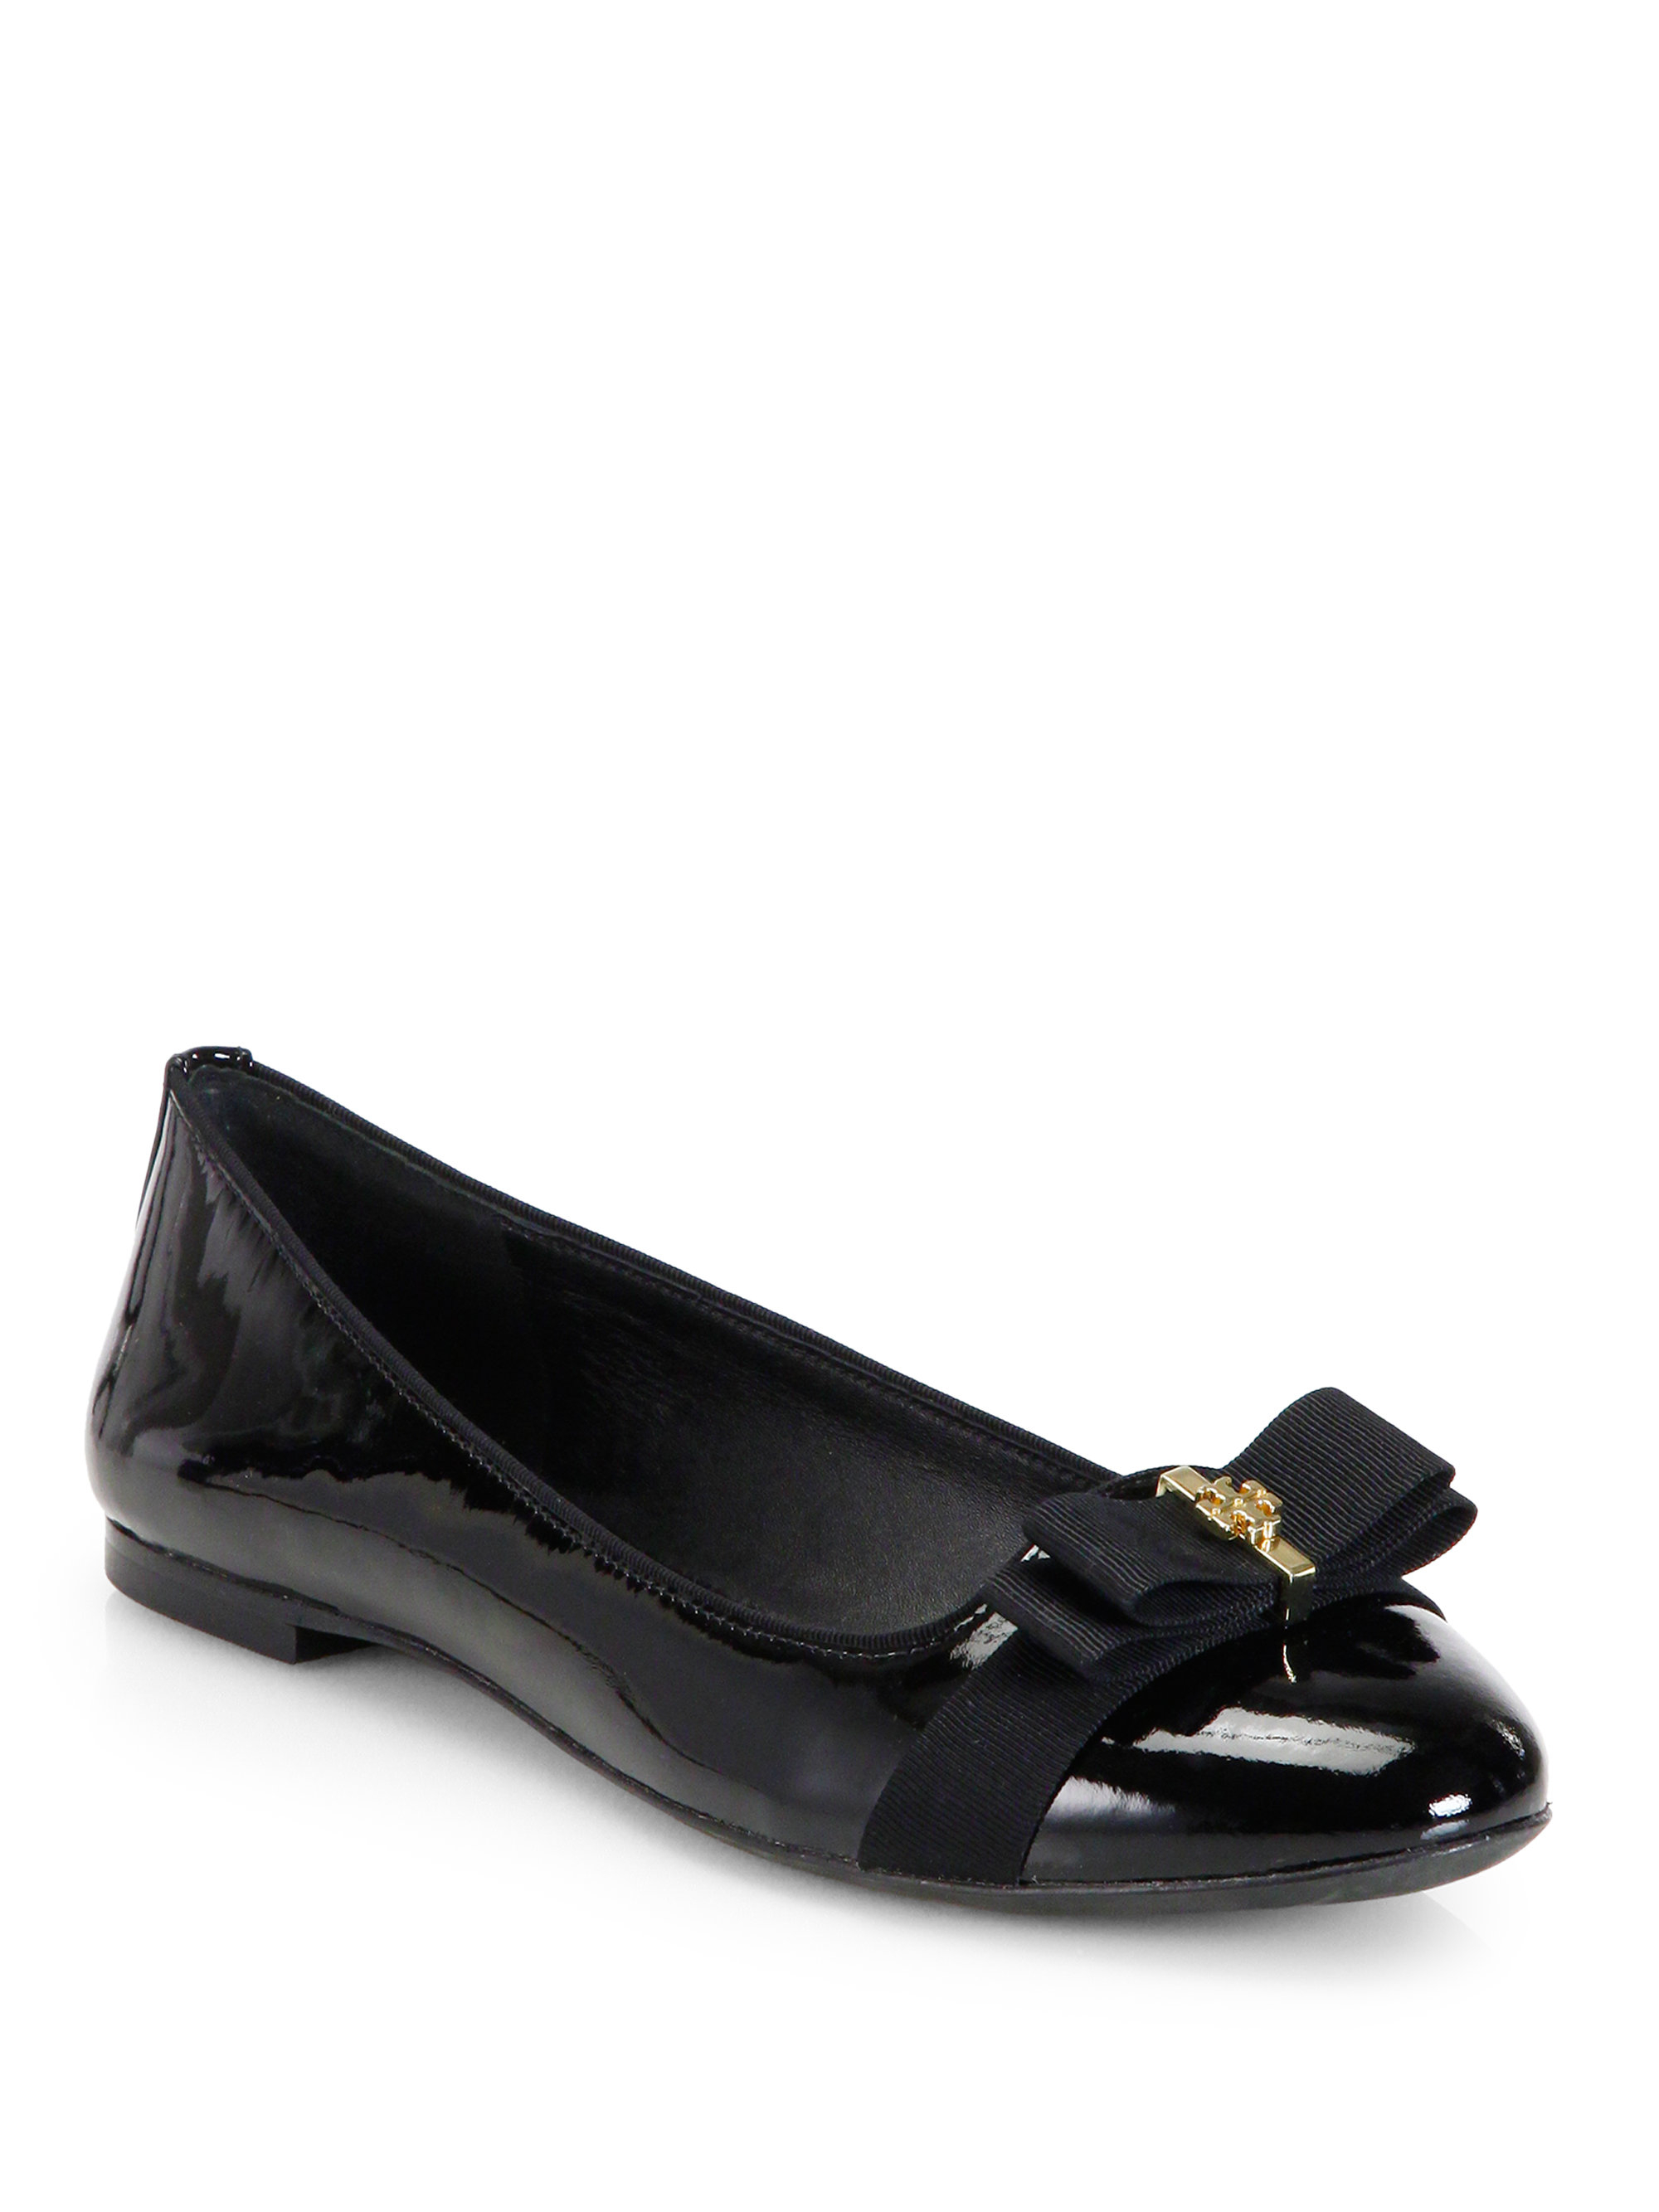 ba004bd94391 Tory Burch Trudy Patent Leather Ballet Flats in Black